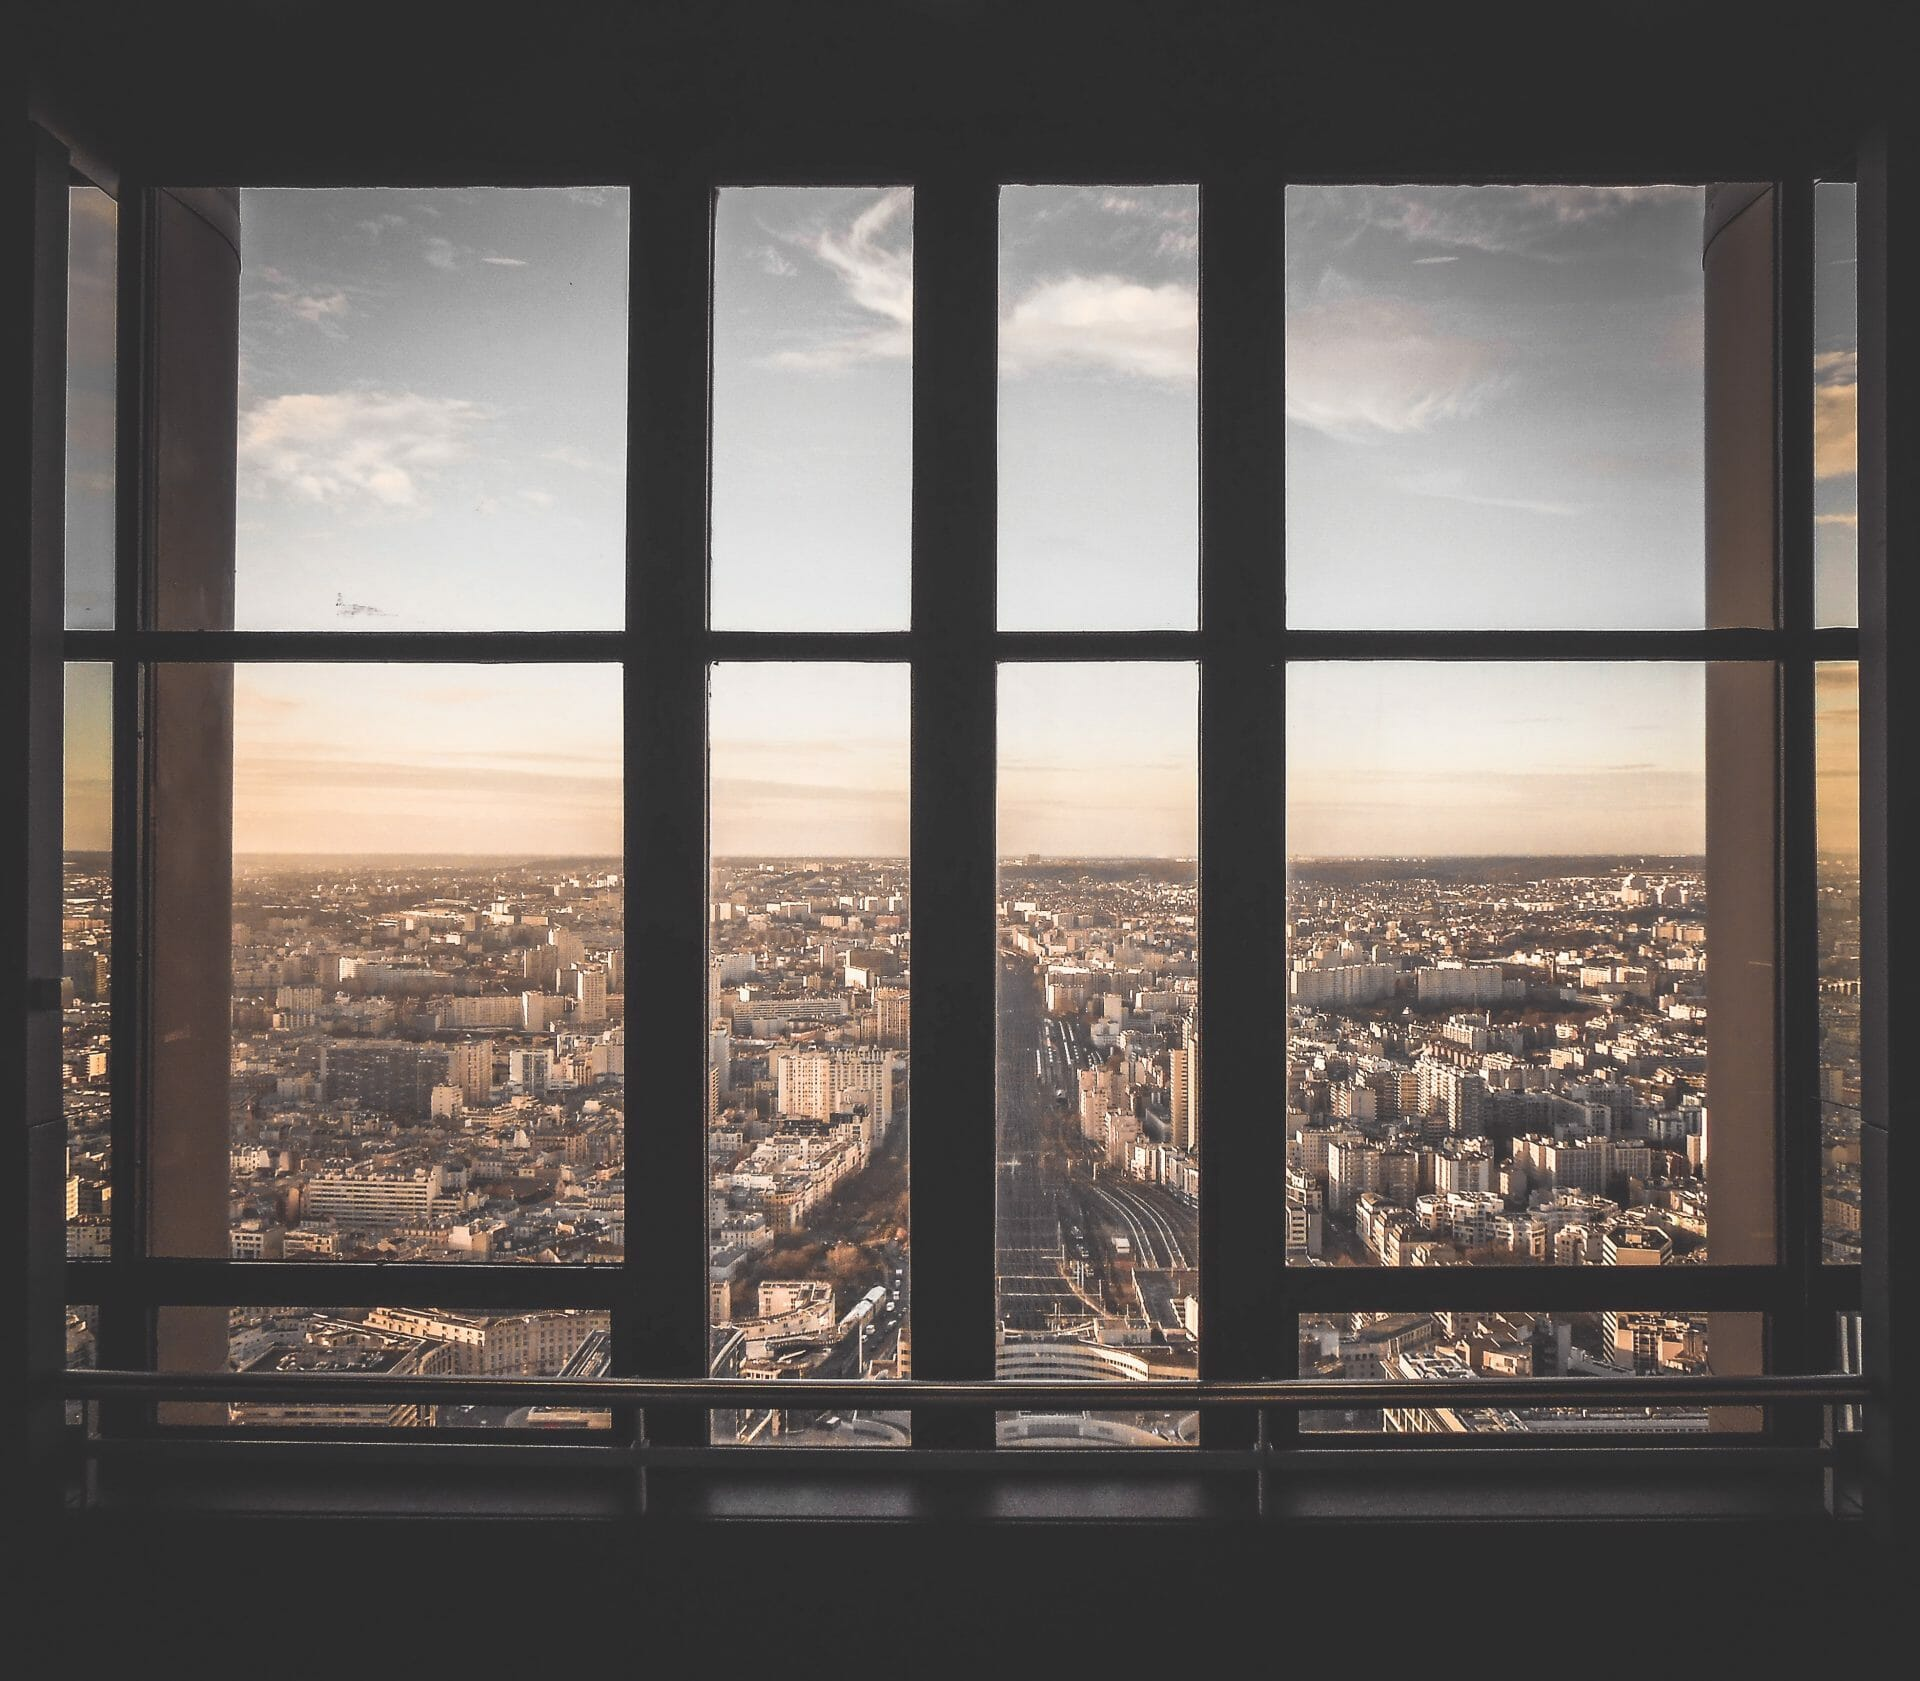 Picture of window with city view for Real Estate News for Investors Podcast Episode #778